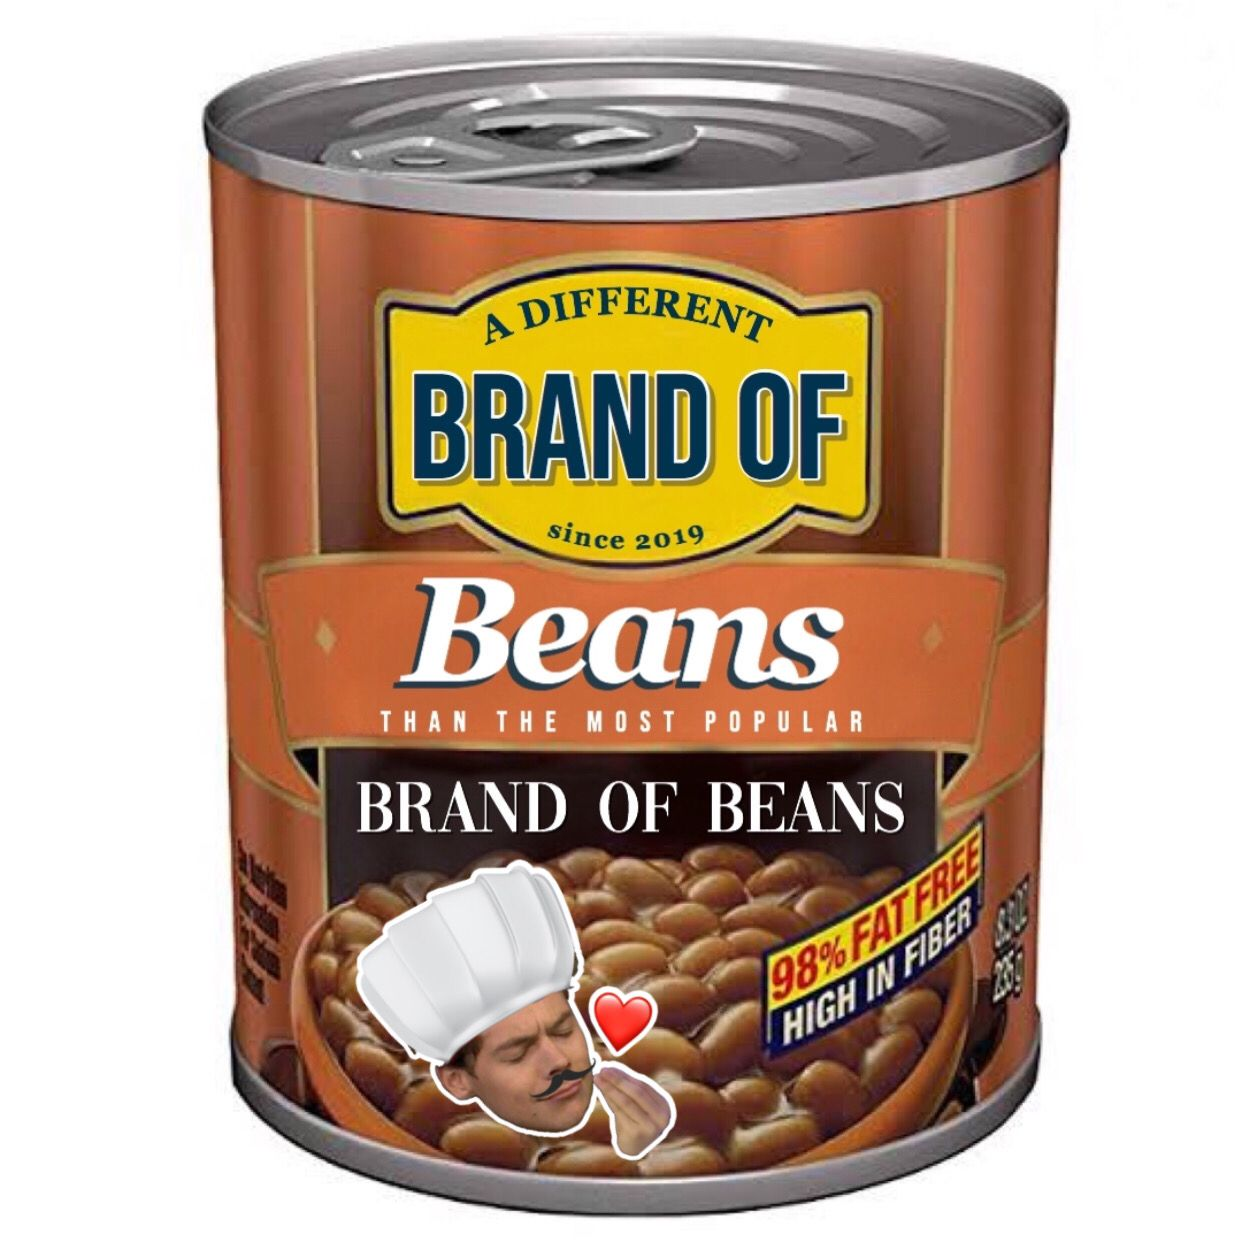 A Different Brand Of Beans In 2020 Harry Styles Memes One Direction Memes Harry Styles